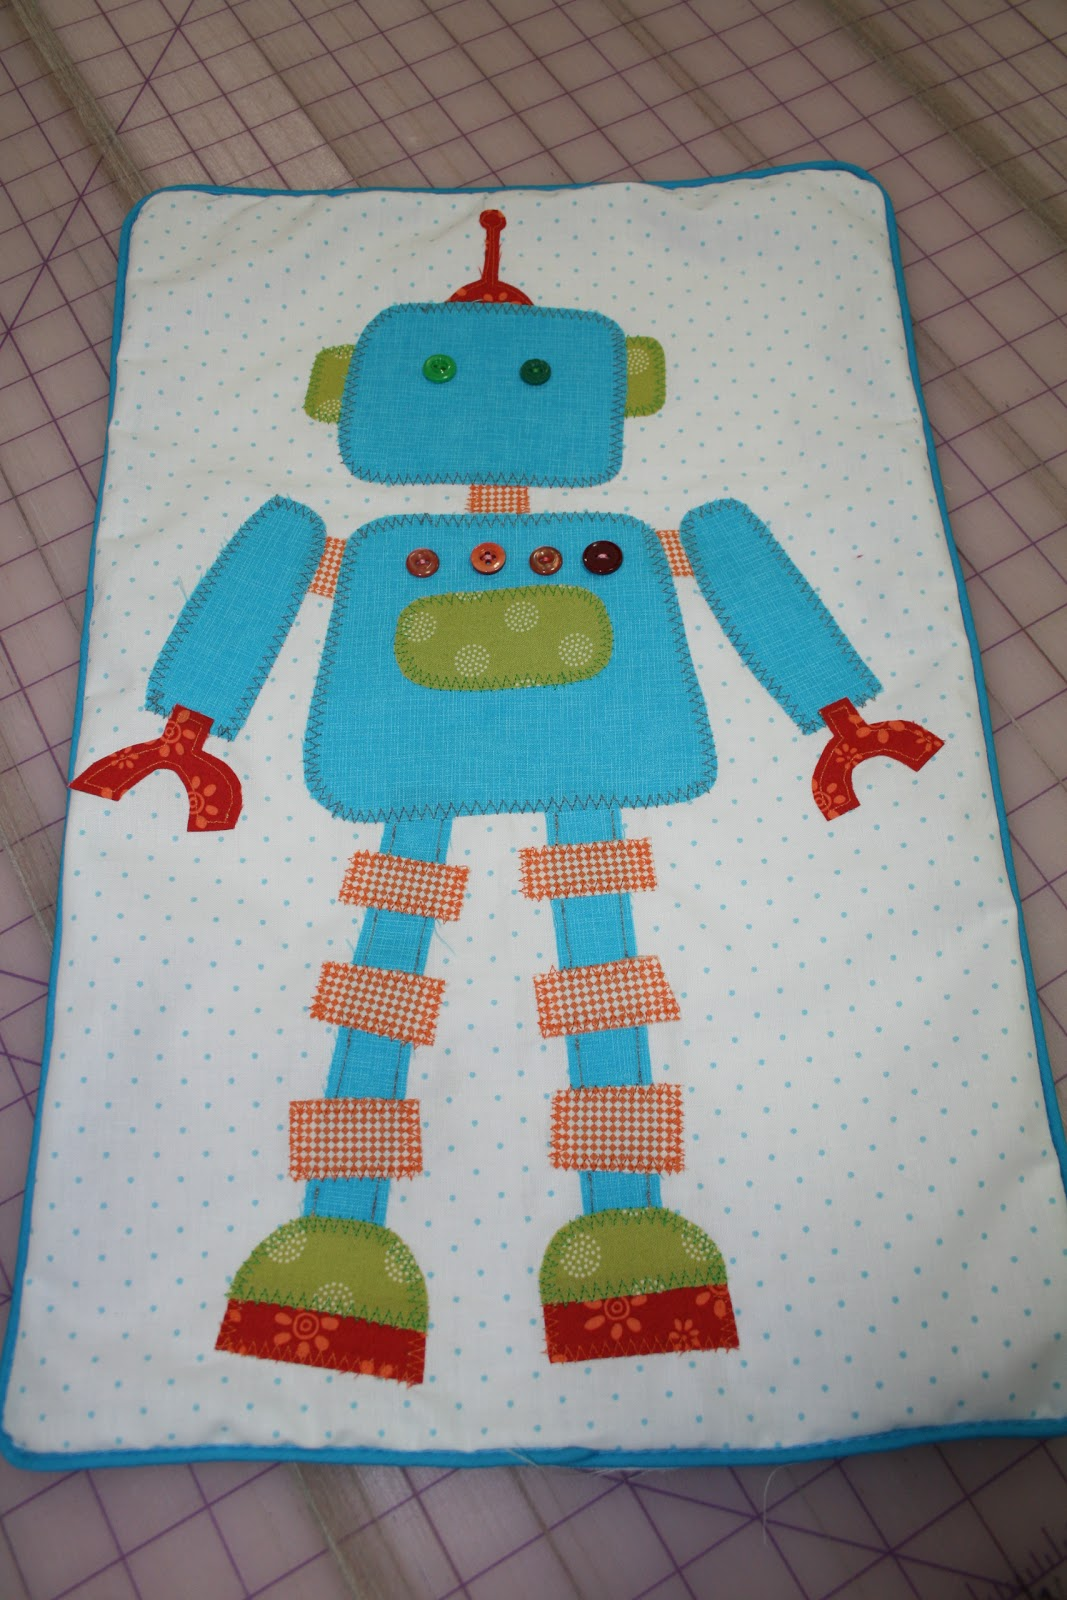 The quilt barn aliens and robots pillow and quilt for Robot quilt fabric